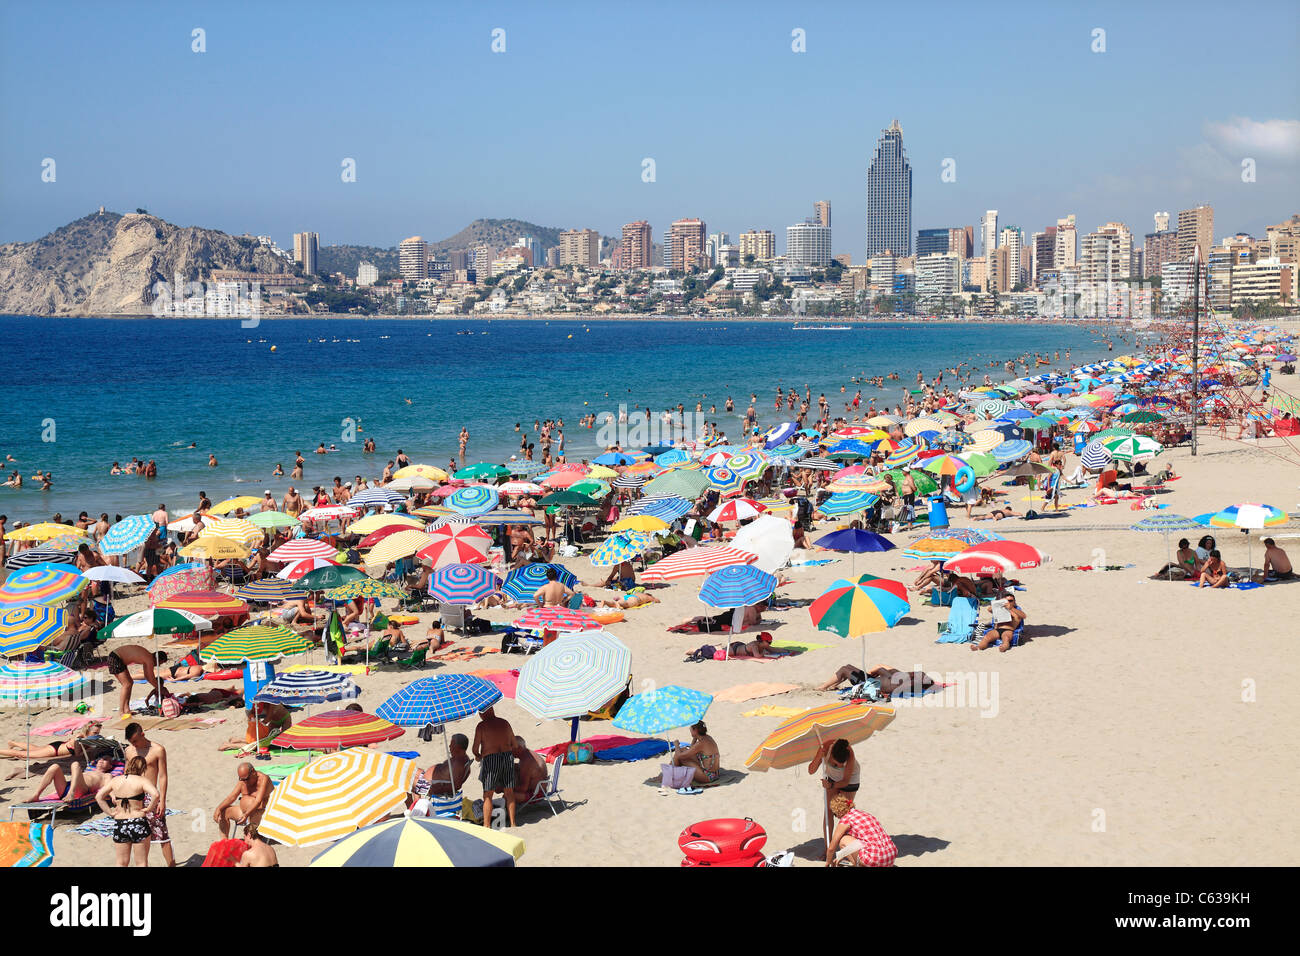 Popular Holiday Resort of Benidorm in Spain - Stock Image